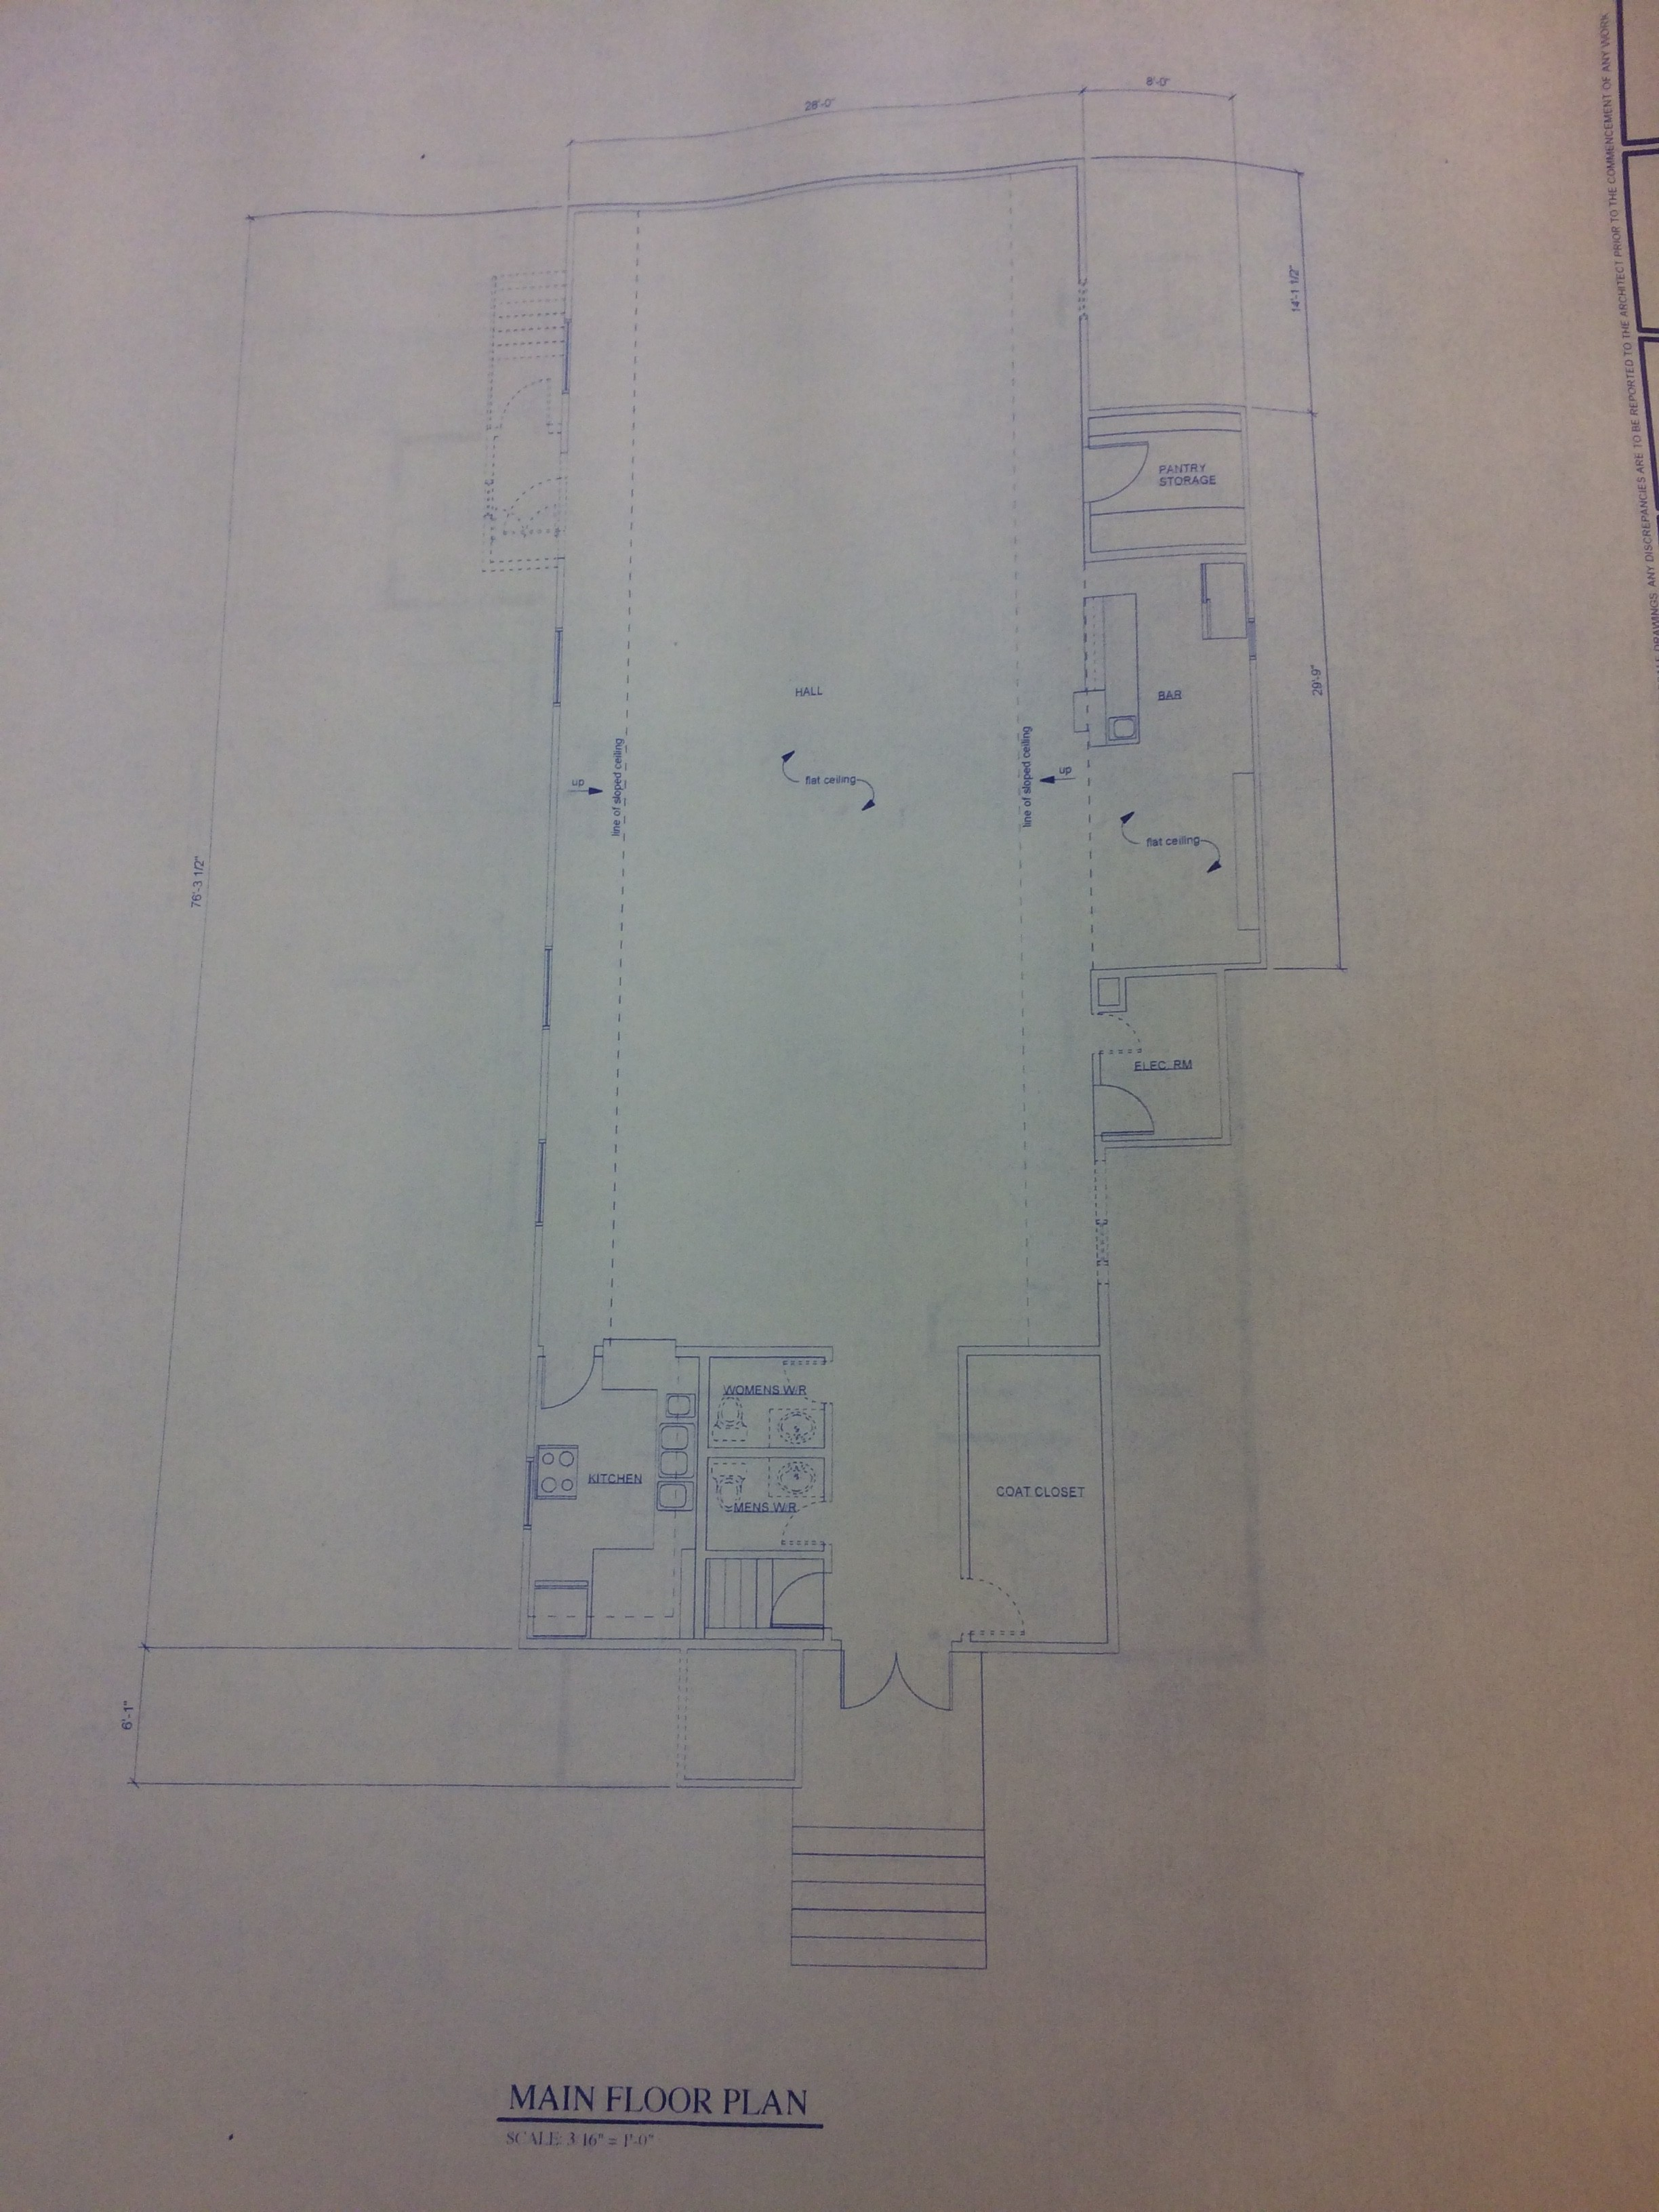 Upper Hall Tuxedo Park Blueprint